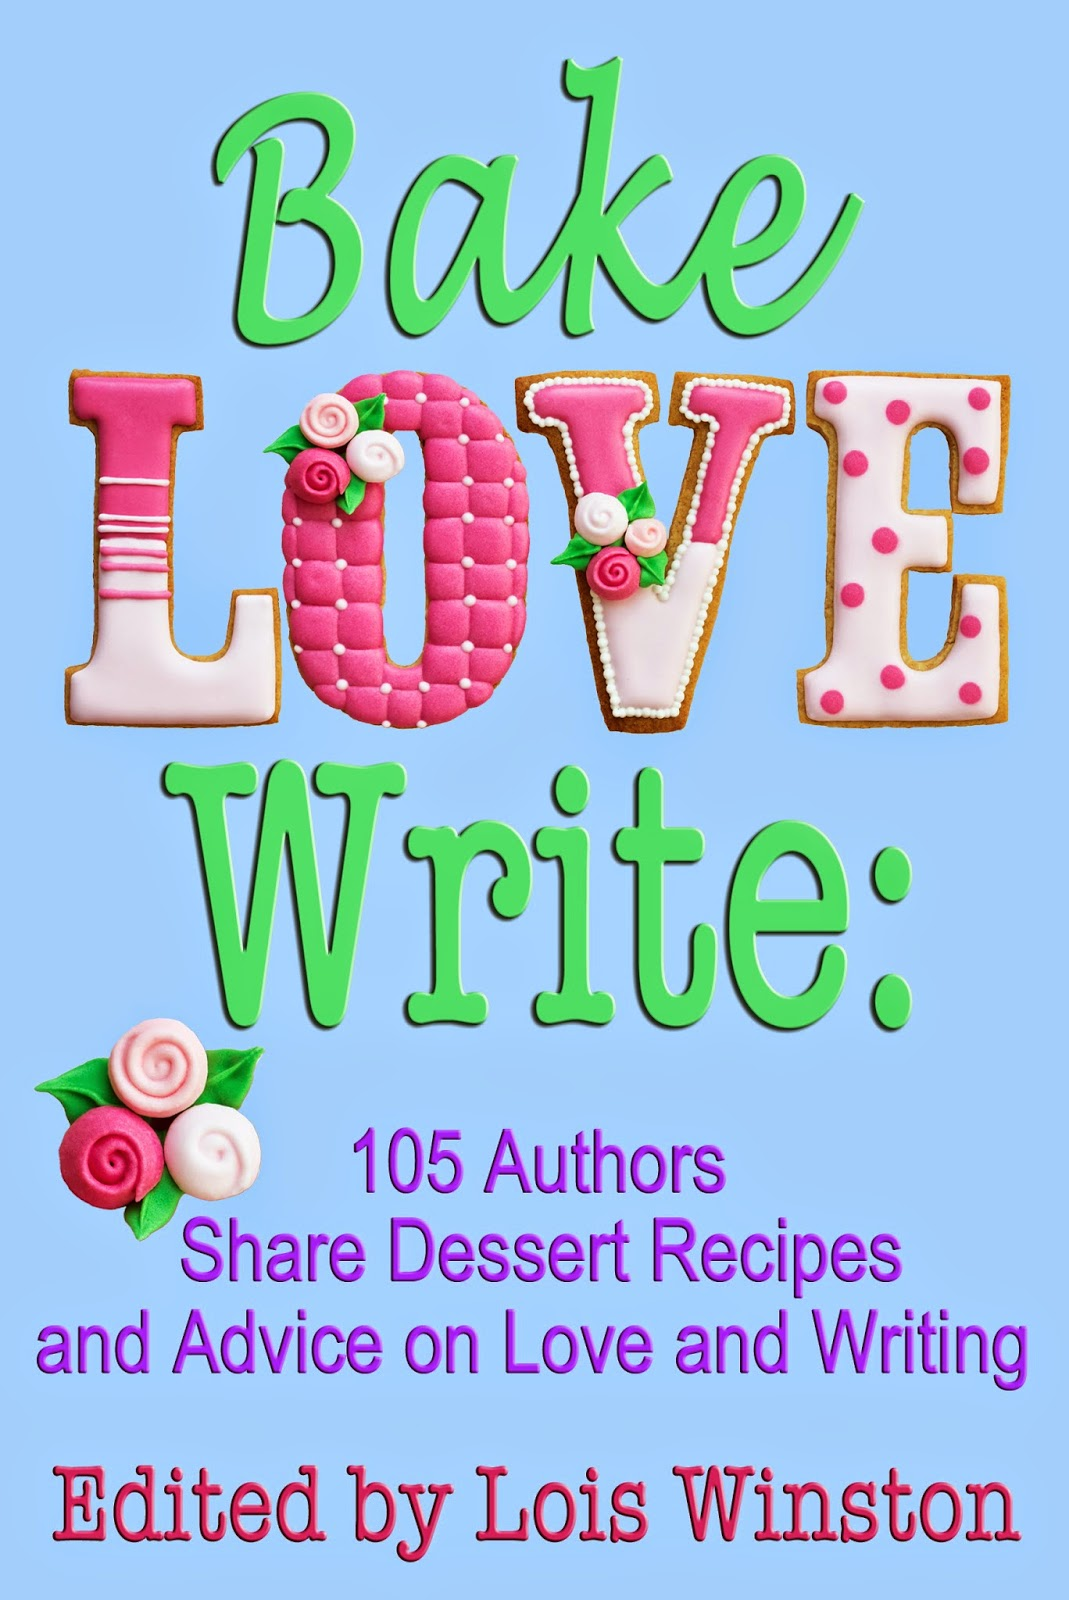 105 Authors Share Dessert Recipes and Advice on Love and Writing